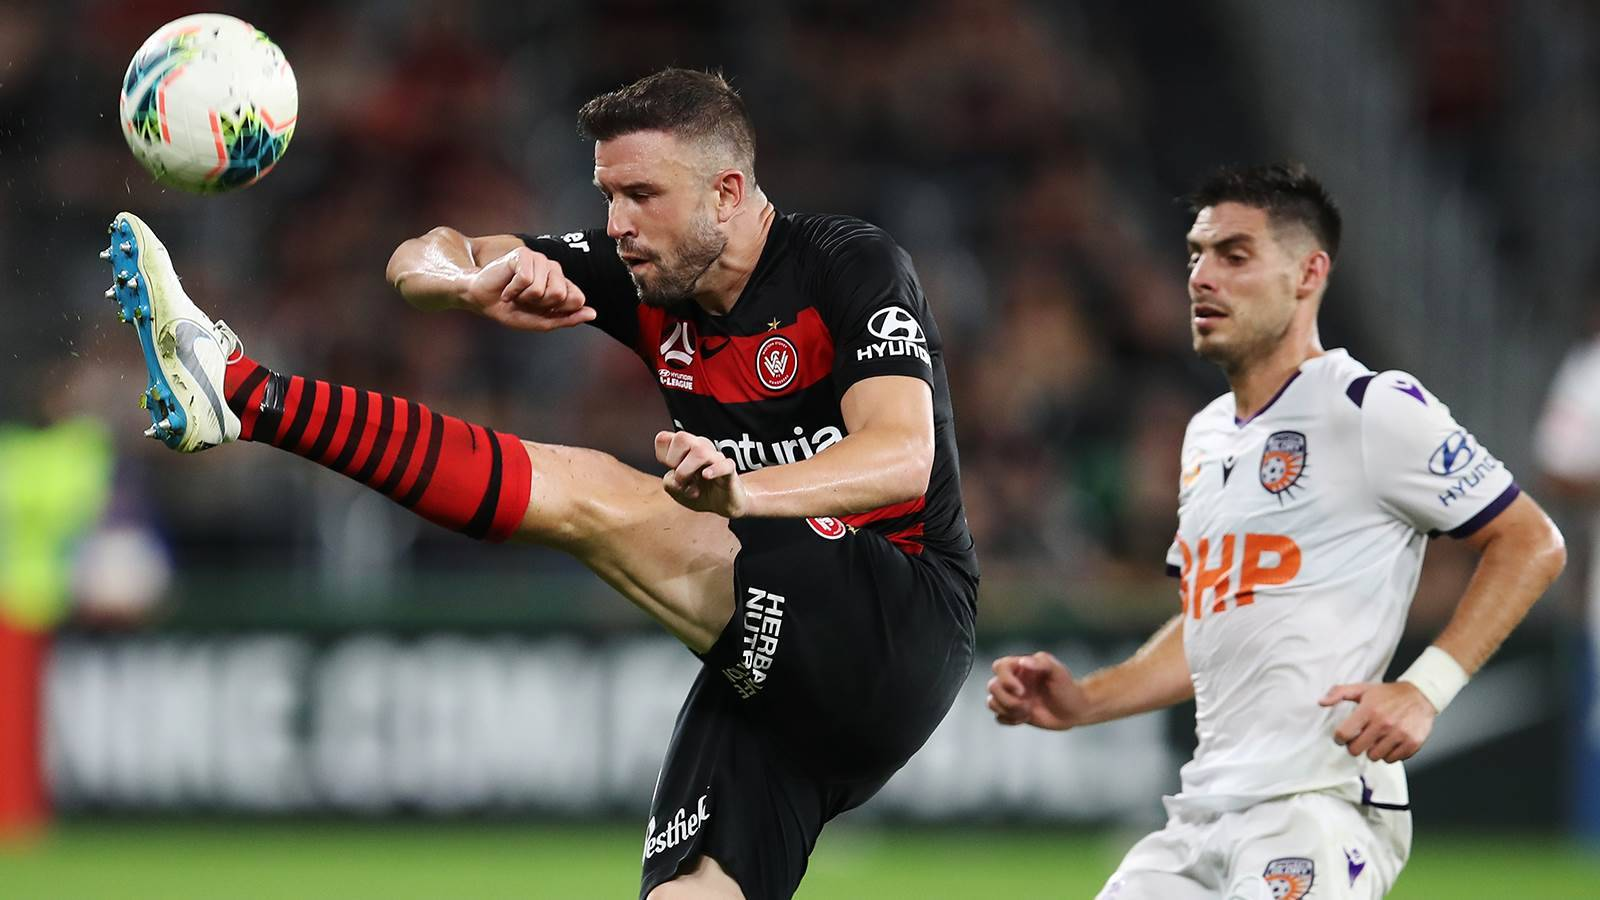 Player Ratings: Western Sydney Wanderers v Perth Glory